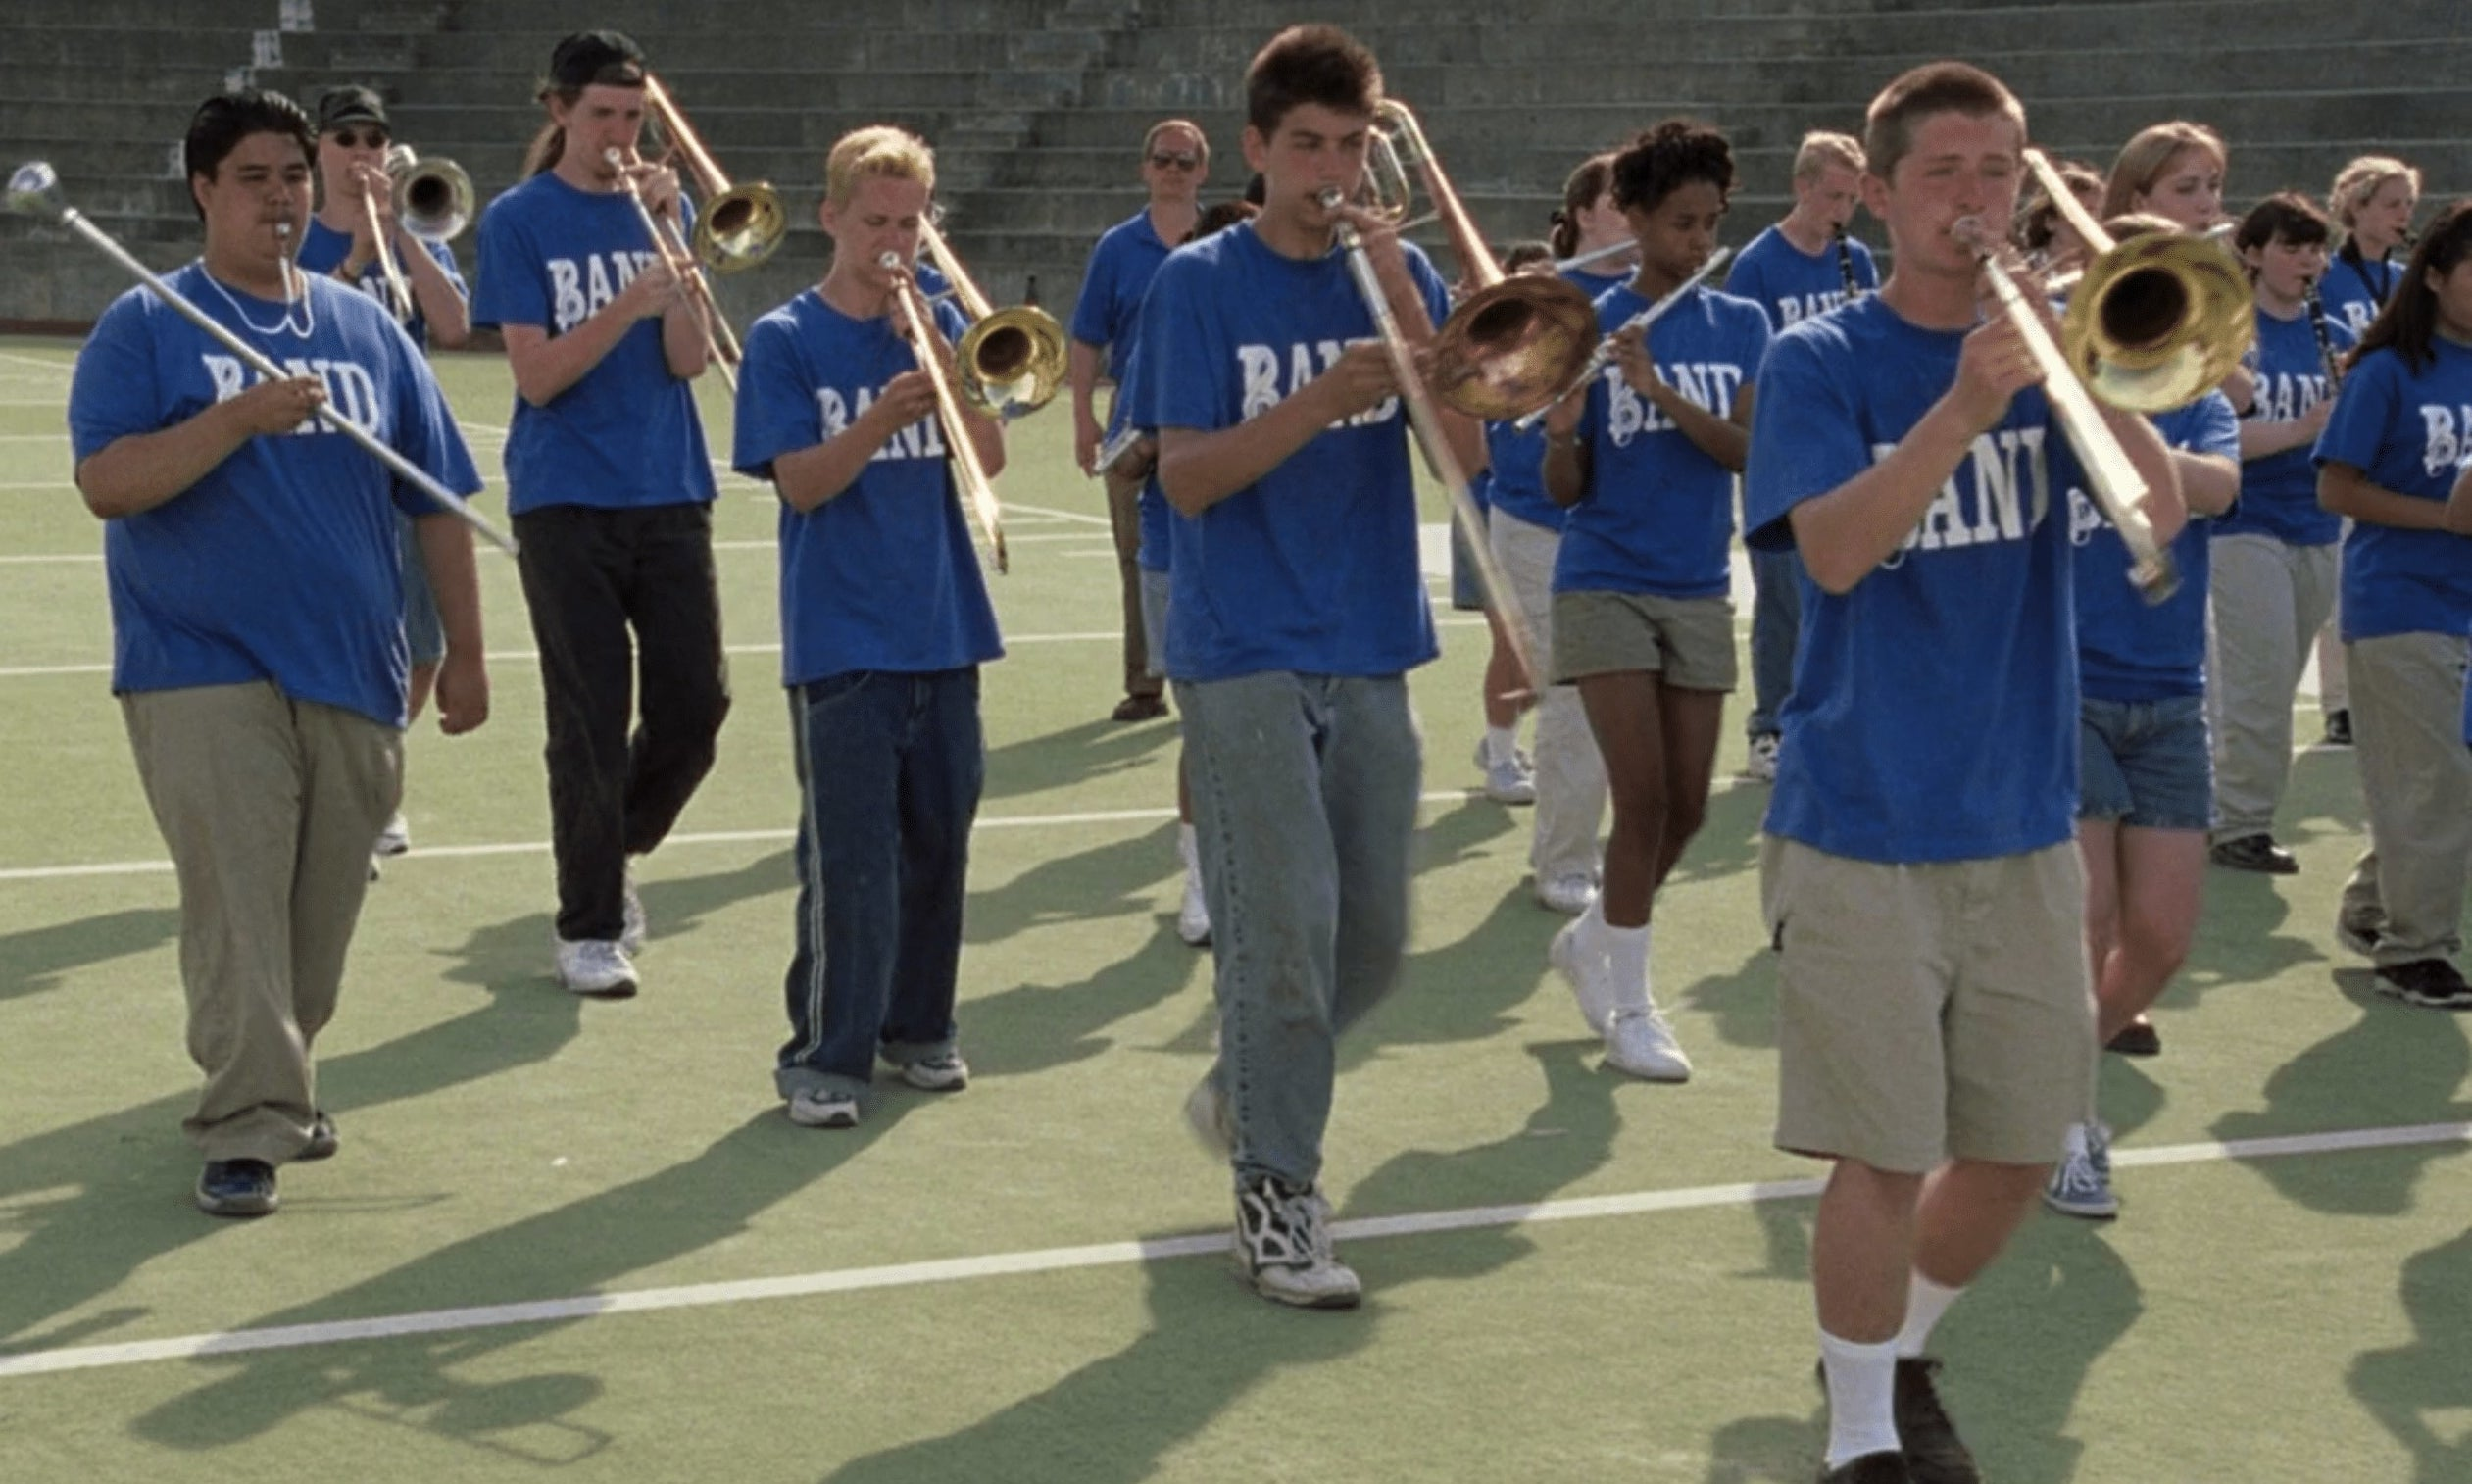 Marching band on football field performs